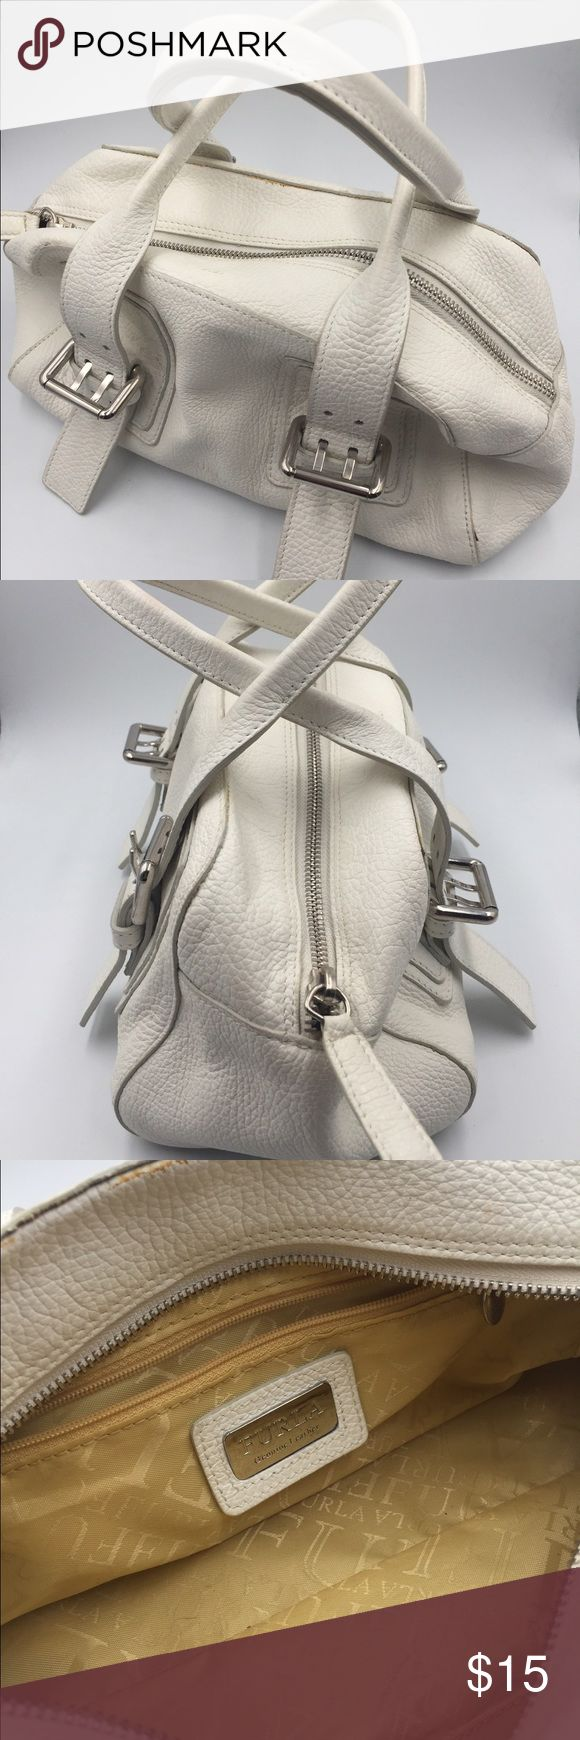 "White Furla Handbag White leather Furla Handbag. Measures approximately 12""L x 5""H x 4""W. Straps measure about 6"" from top of bag to bottom loop. Good condition with light stain in lining from gloss and at top seam as shown in 3rd photo. Bags"